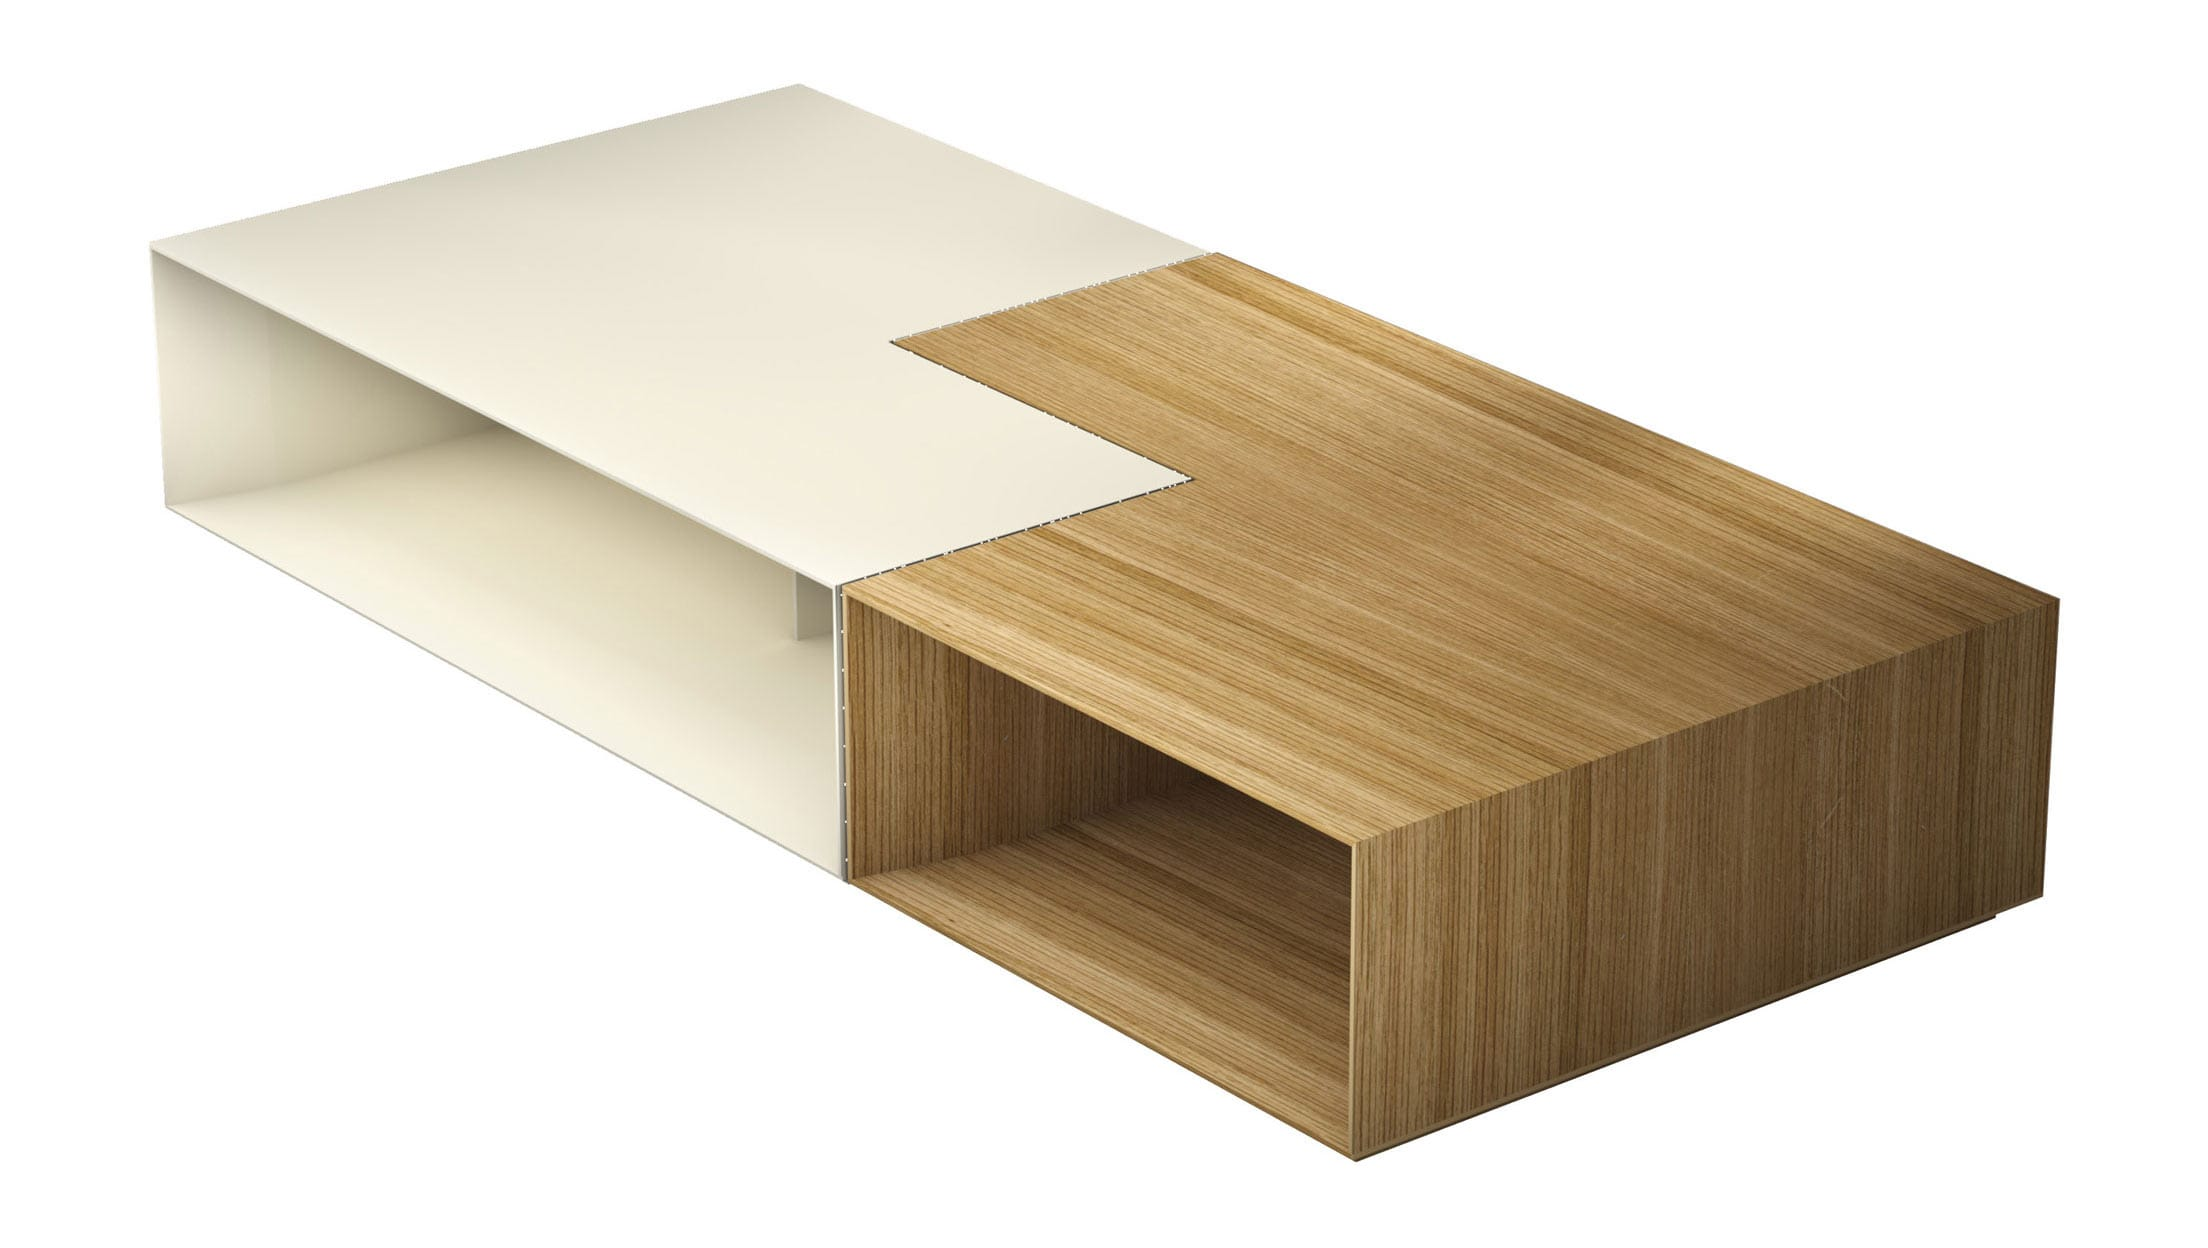 Putney Jigsaw Coffee Table Natural Oak and Matte Beige by Modloft